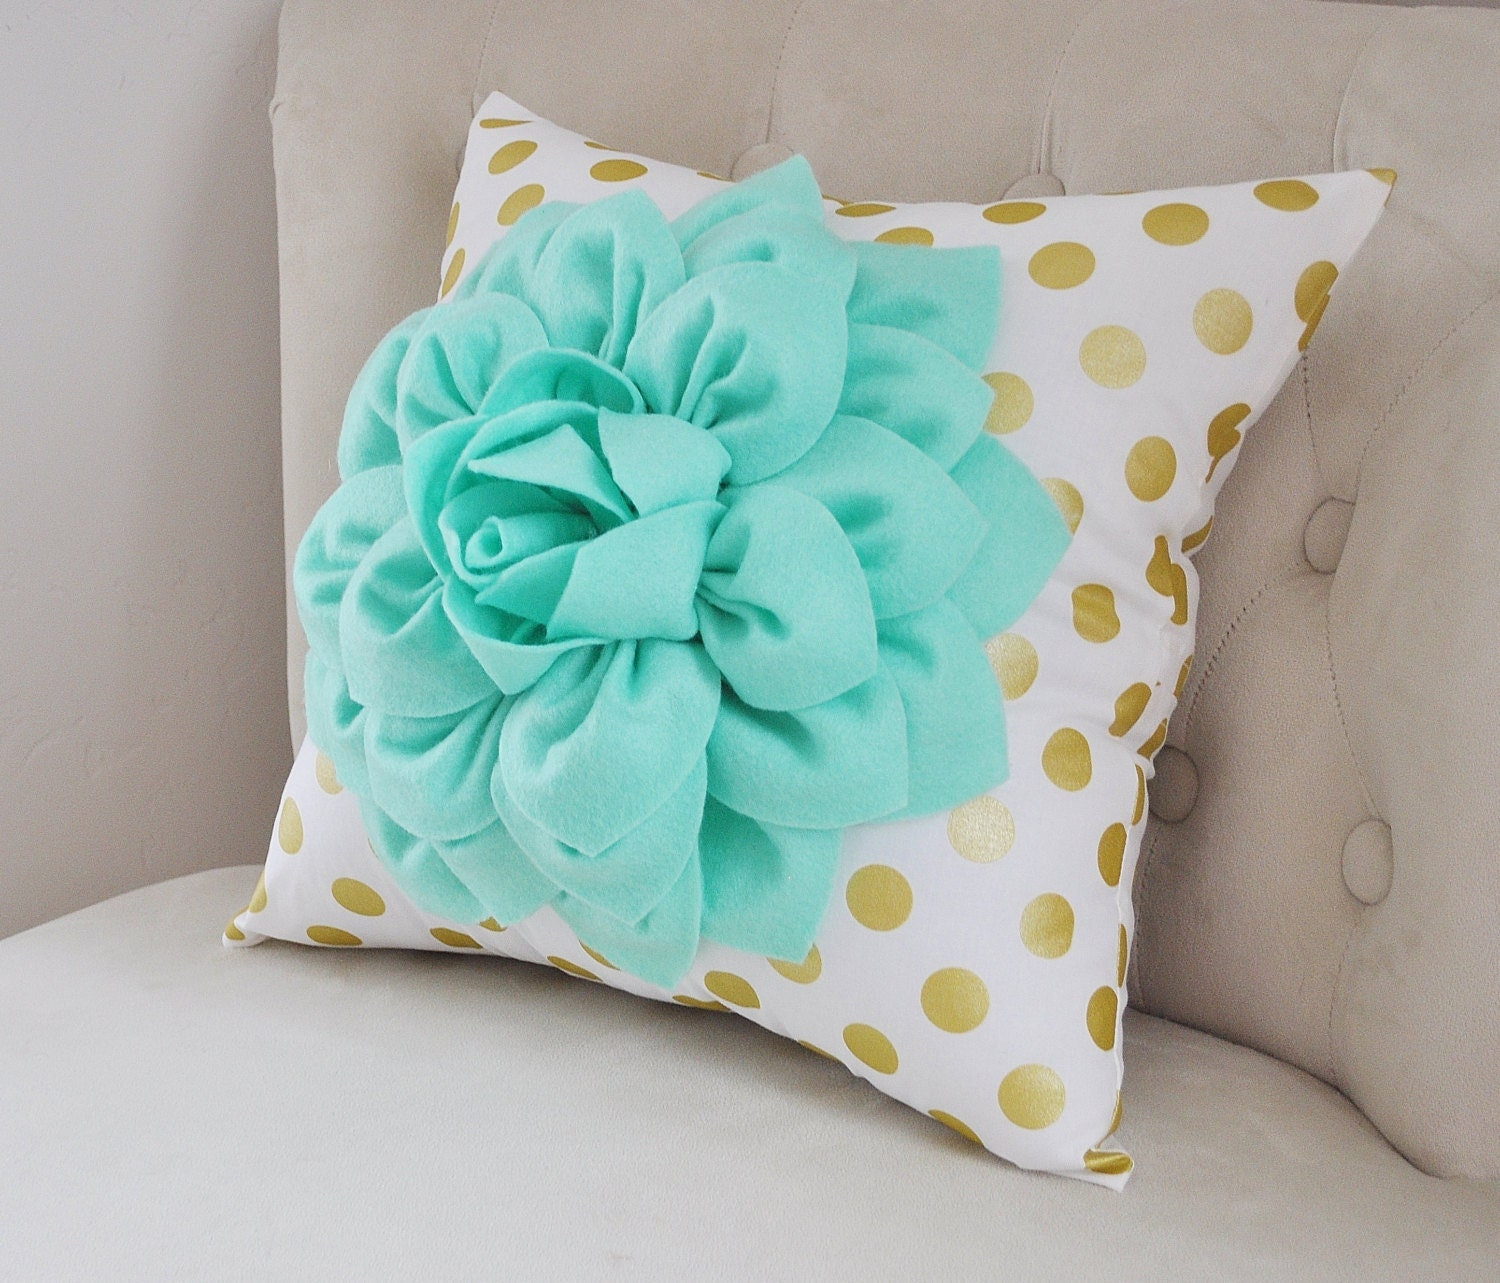 Marion S Coral And Gold Polka Dot Nursery: Gold Polka Dot Pillow With Mint Green Dahlia Flower